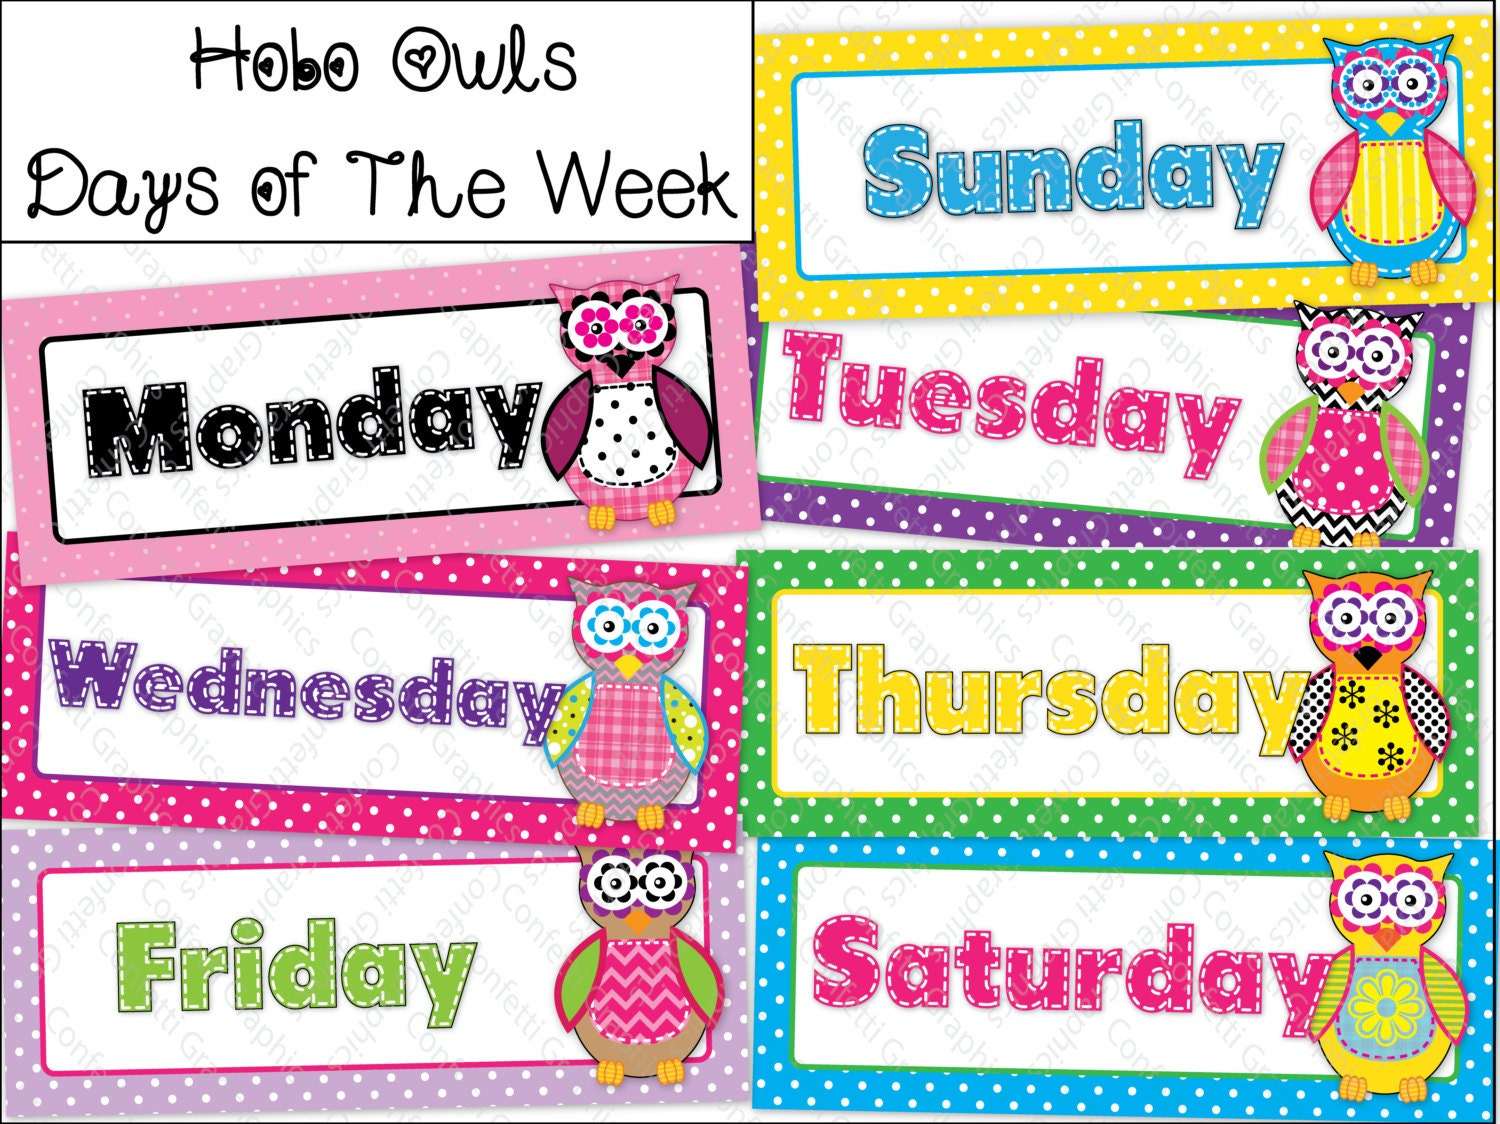 Calendar Days : Days of the week calendar cards owl polka dot hobo stitched